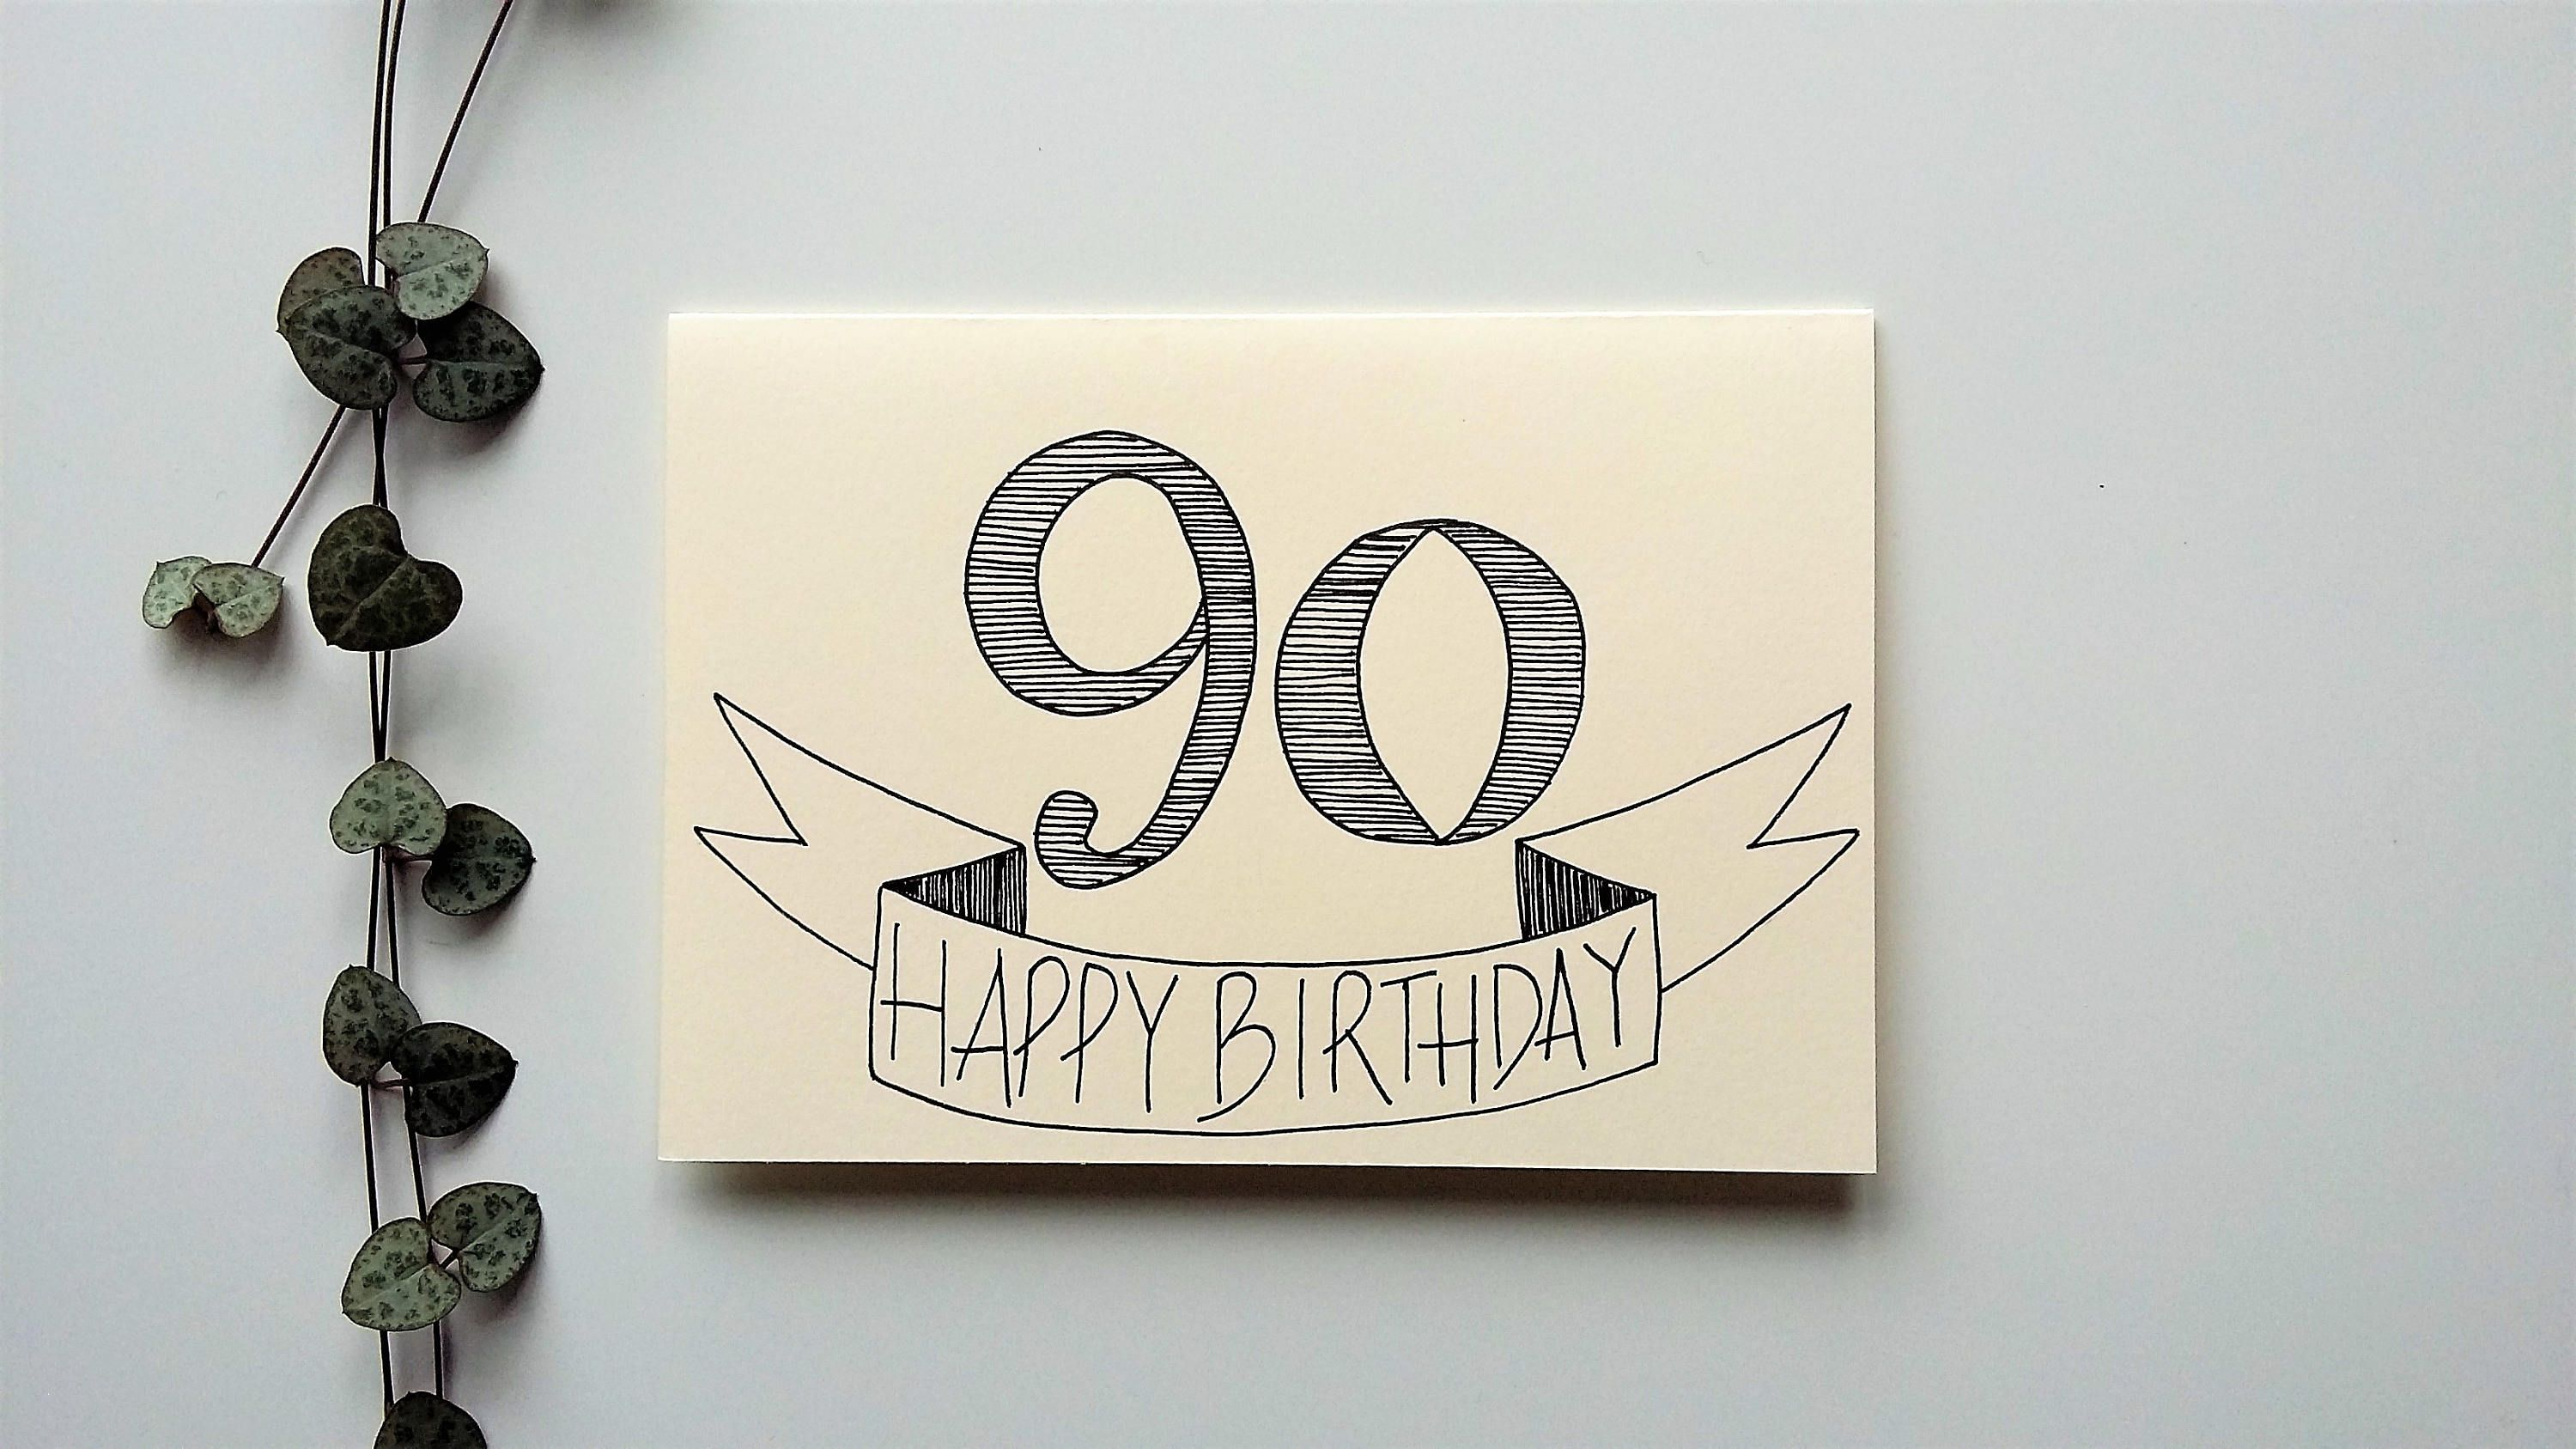 90th Birthday Card A6 Hand Drawn Special Birthday Card Handmade Hand Drawn Cards By Beck S Creativ 90th Birthday Cards Special Birthday Cards Birthday Cards